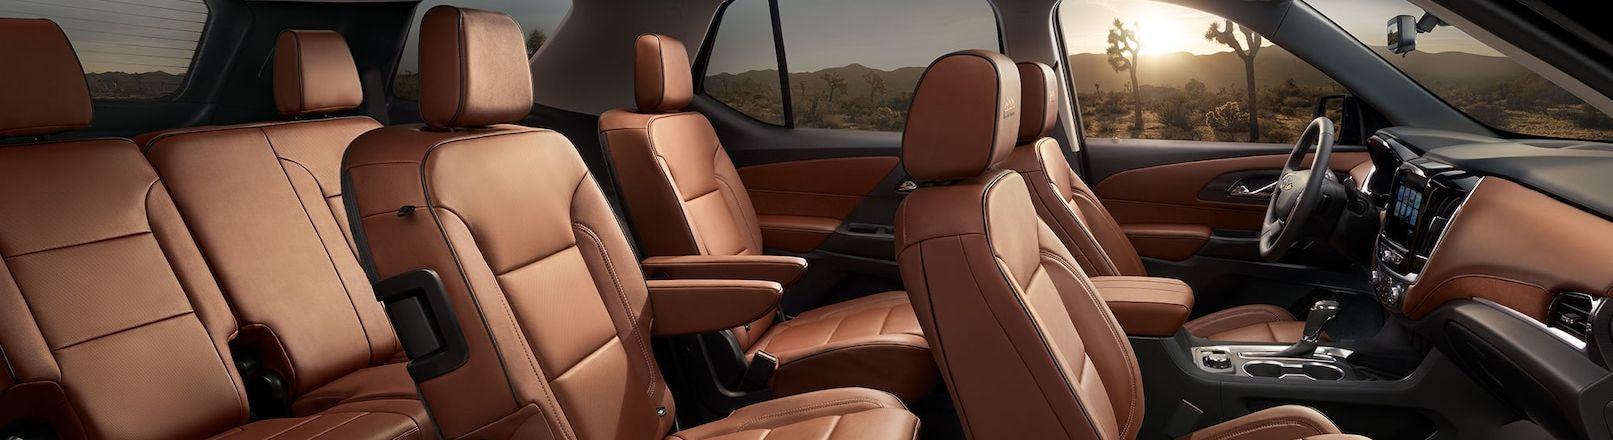 Luxurious Seating Options in the 2019 Traverse